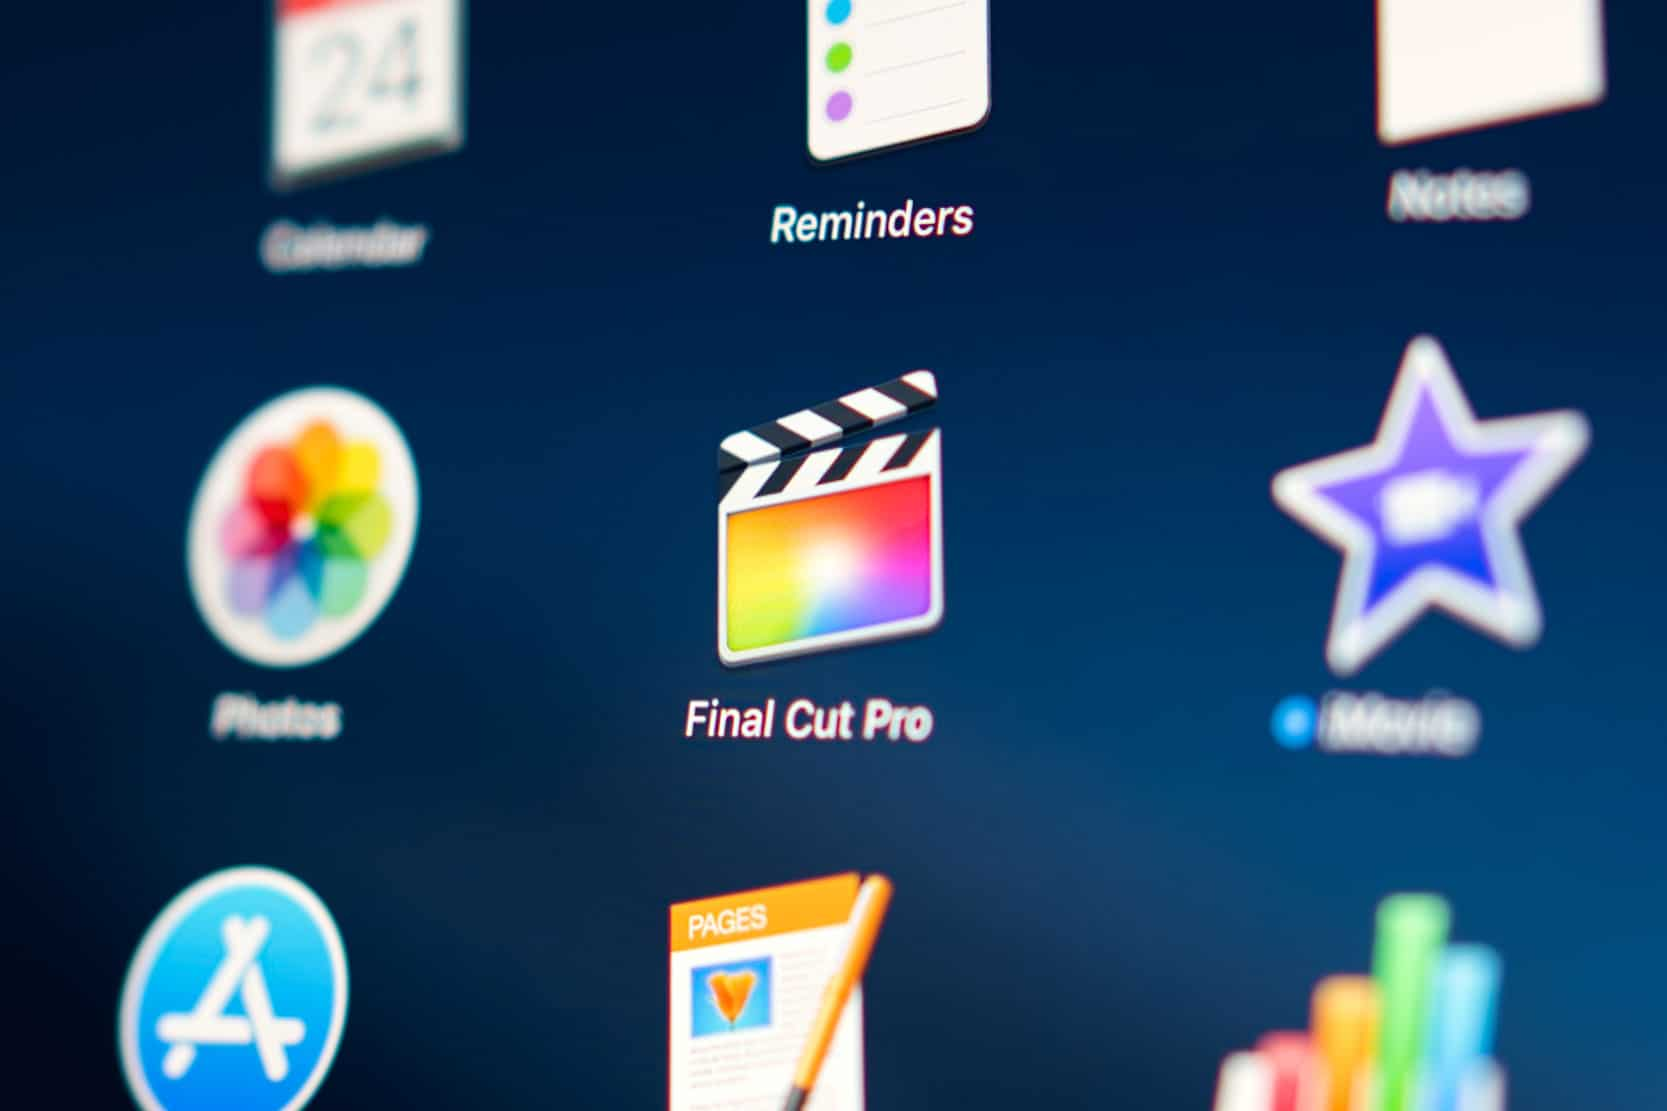 How to use Custom LUT in Final Cut Pro X